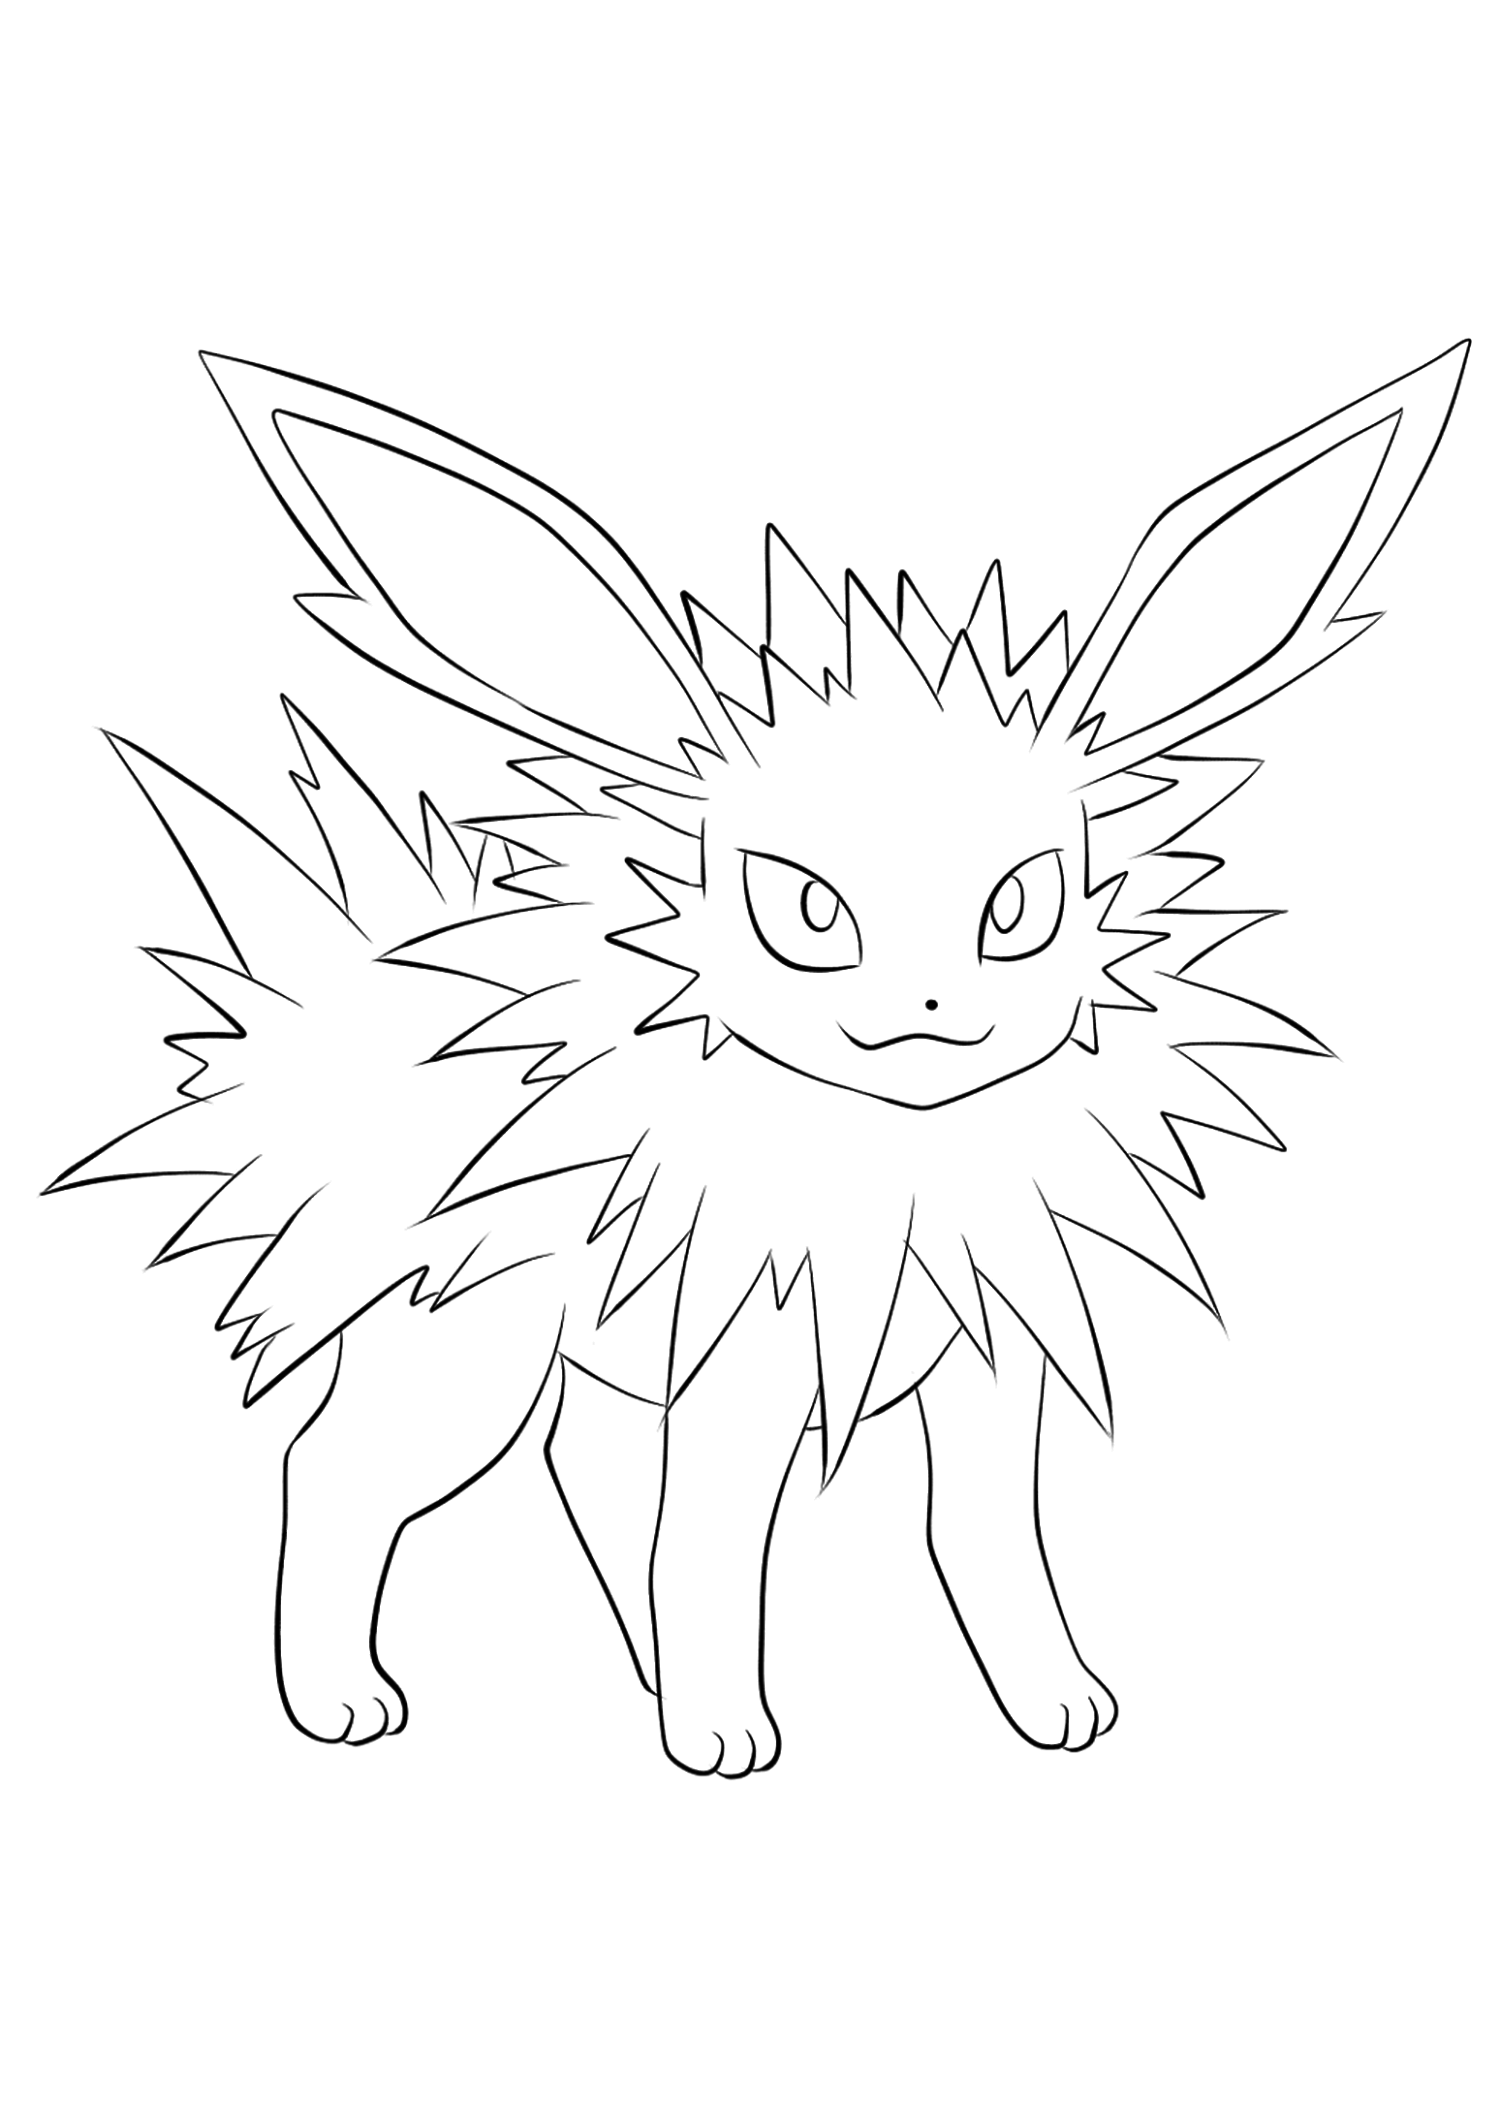 Voltali (No.135)Coloriage de Voltali (Jolteon), Pokémon de Génération I, de type : ElectrikOriginal image credit: Pokemon linearts by Lilly Gerbil on Deviantart.Permission:  All rights reserved © Pokemon company and Ken Sugimori.